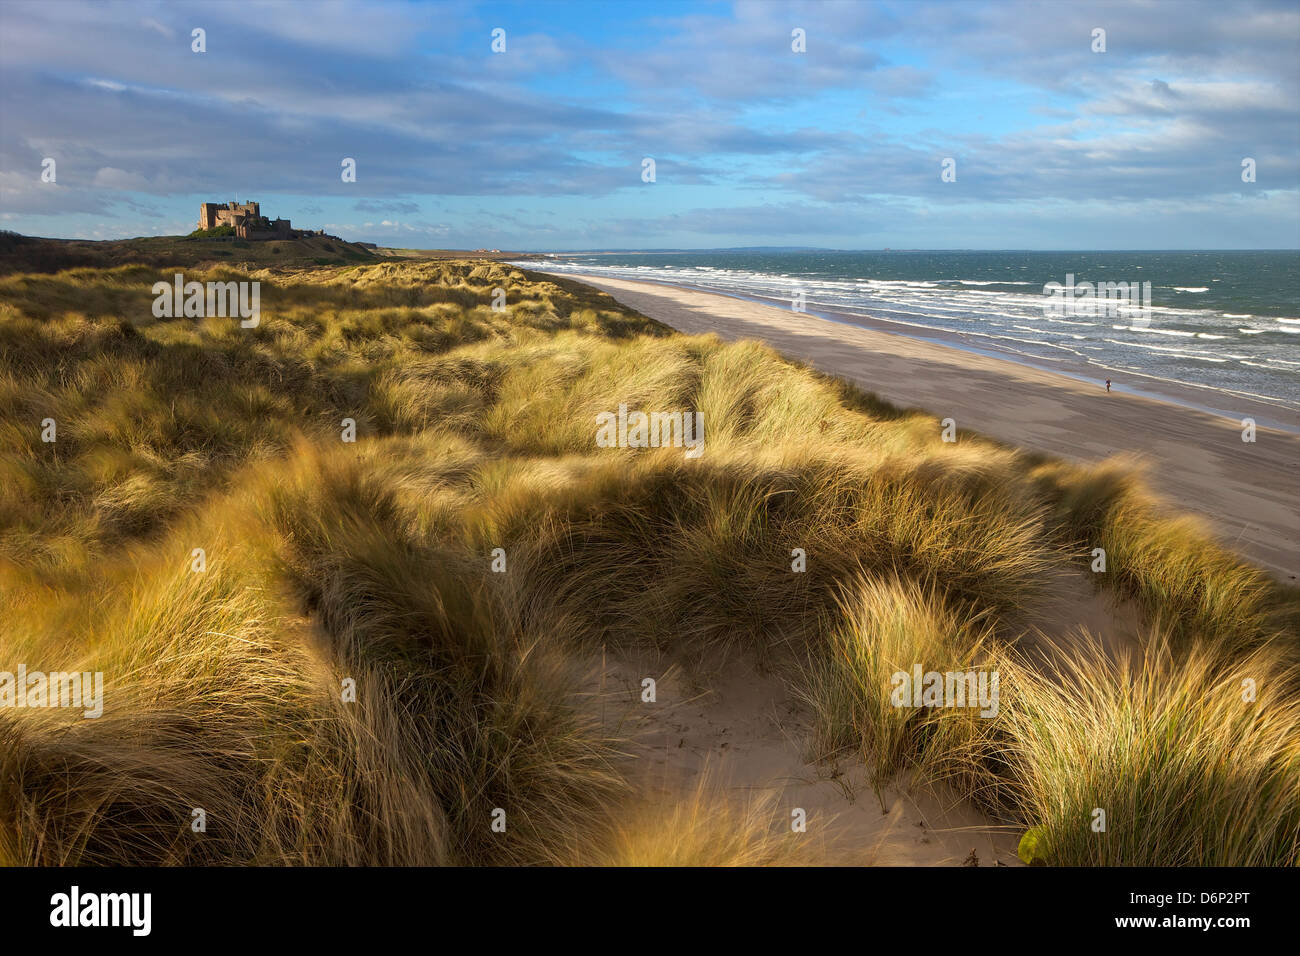 Marram grass, beach and surf with Bamburgh Castle in distance, Bamburgh, Northumberland, England, United Kingdom, - Stock Image